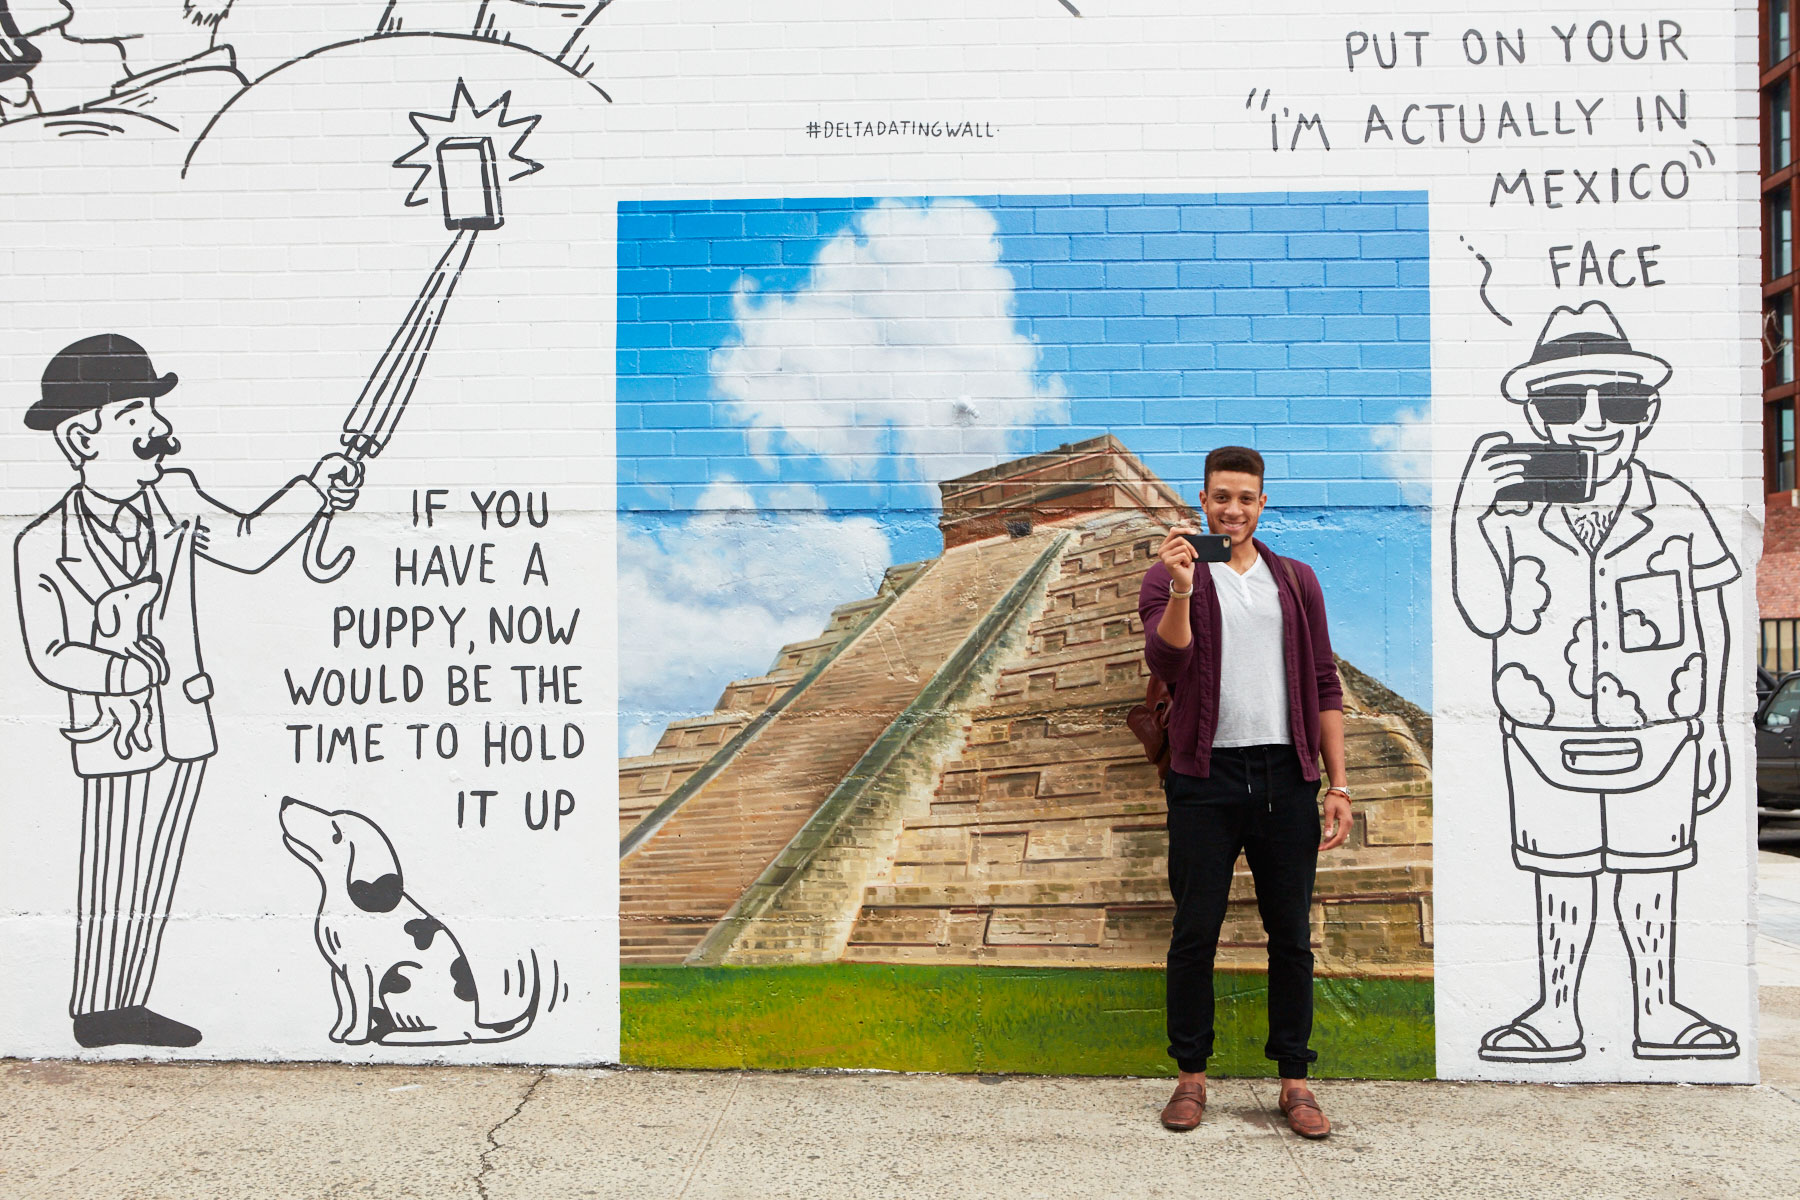 In addition to the #DeltaDatingWall on Wythe Avenue, Delta commissioned  another wall in the middle of Brooklyn's Smorgasburg event.